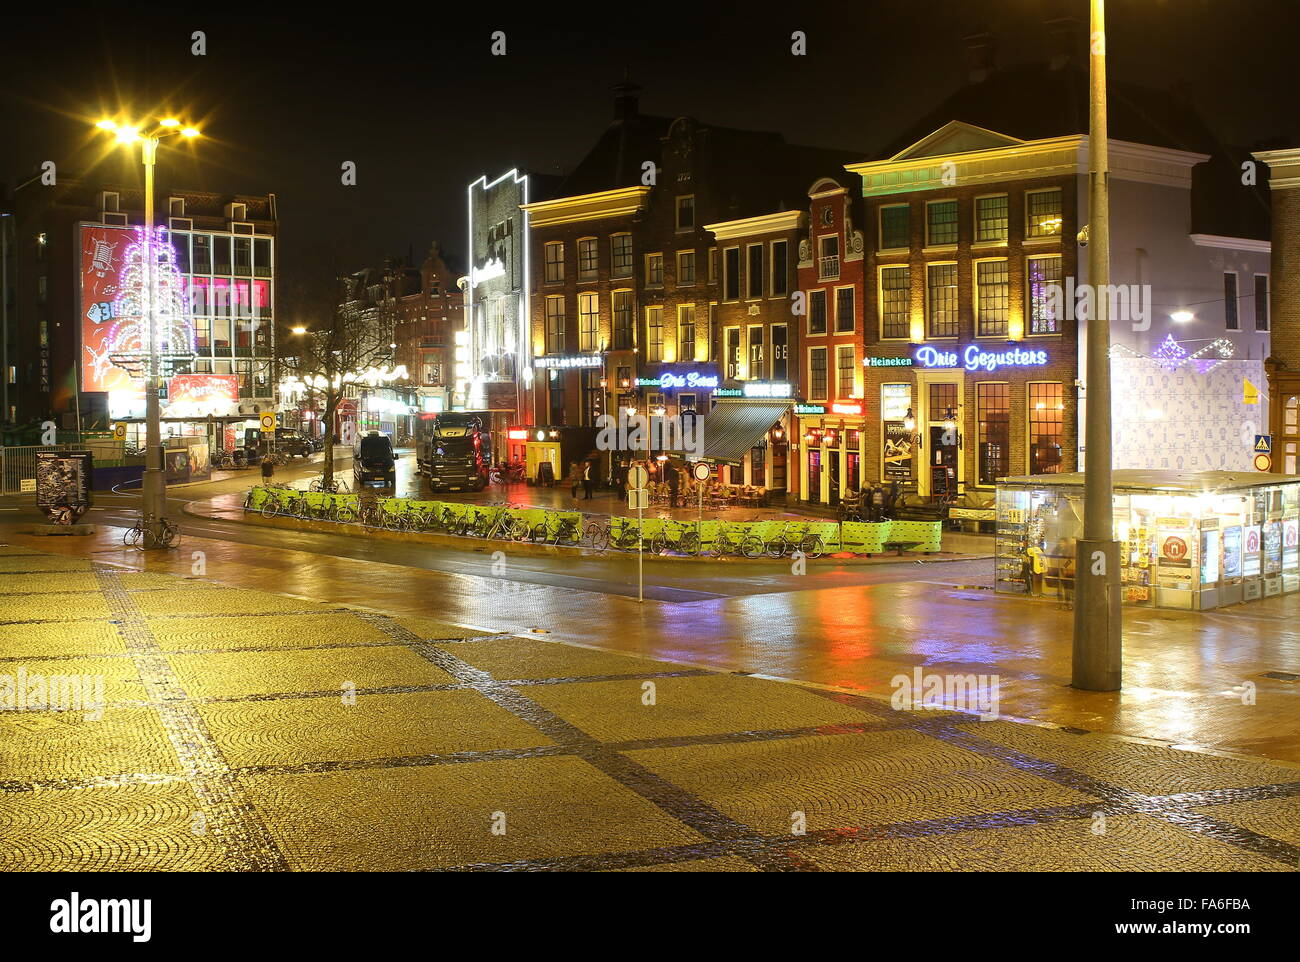 south side of the central square grote markt in groningen stock photo 92342190 alamy. Black Bedroom Furniture Sets. Home Design Ideas